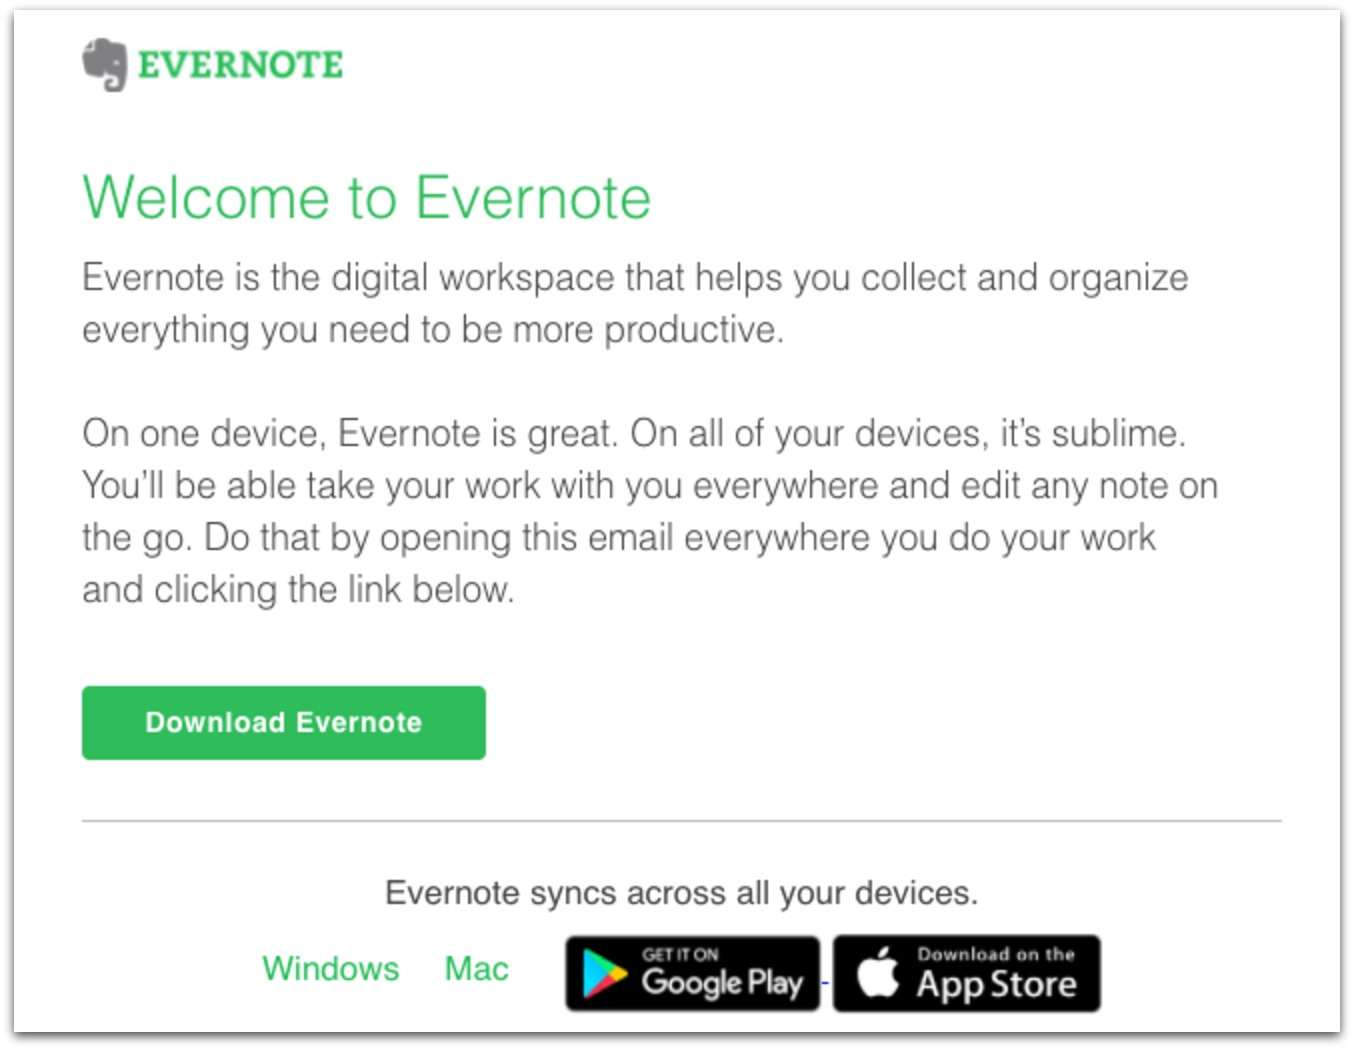 evernote automated email template